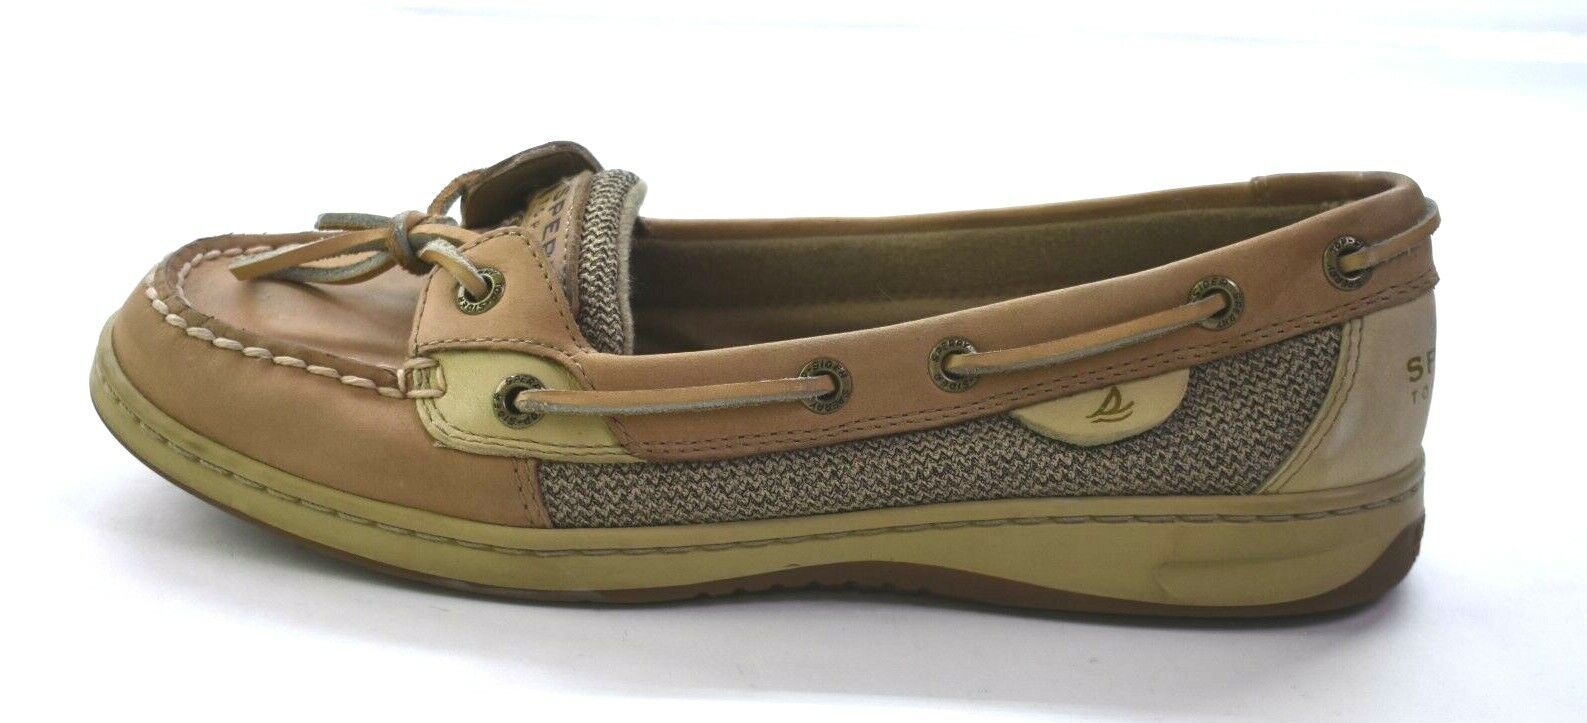 Sperry Top Sider Womens Brown Intrepid 2-Eye Nubuck Leather Boat Shoes 8M